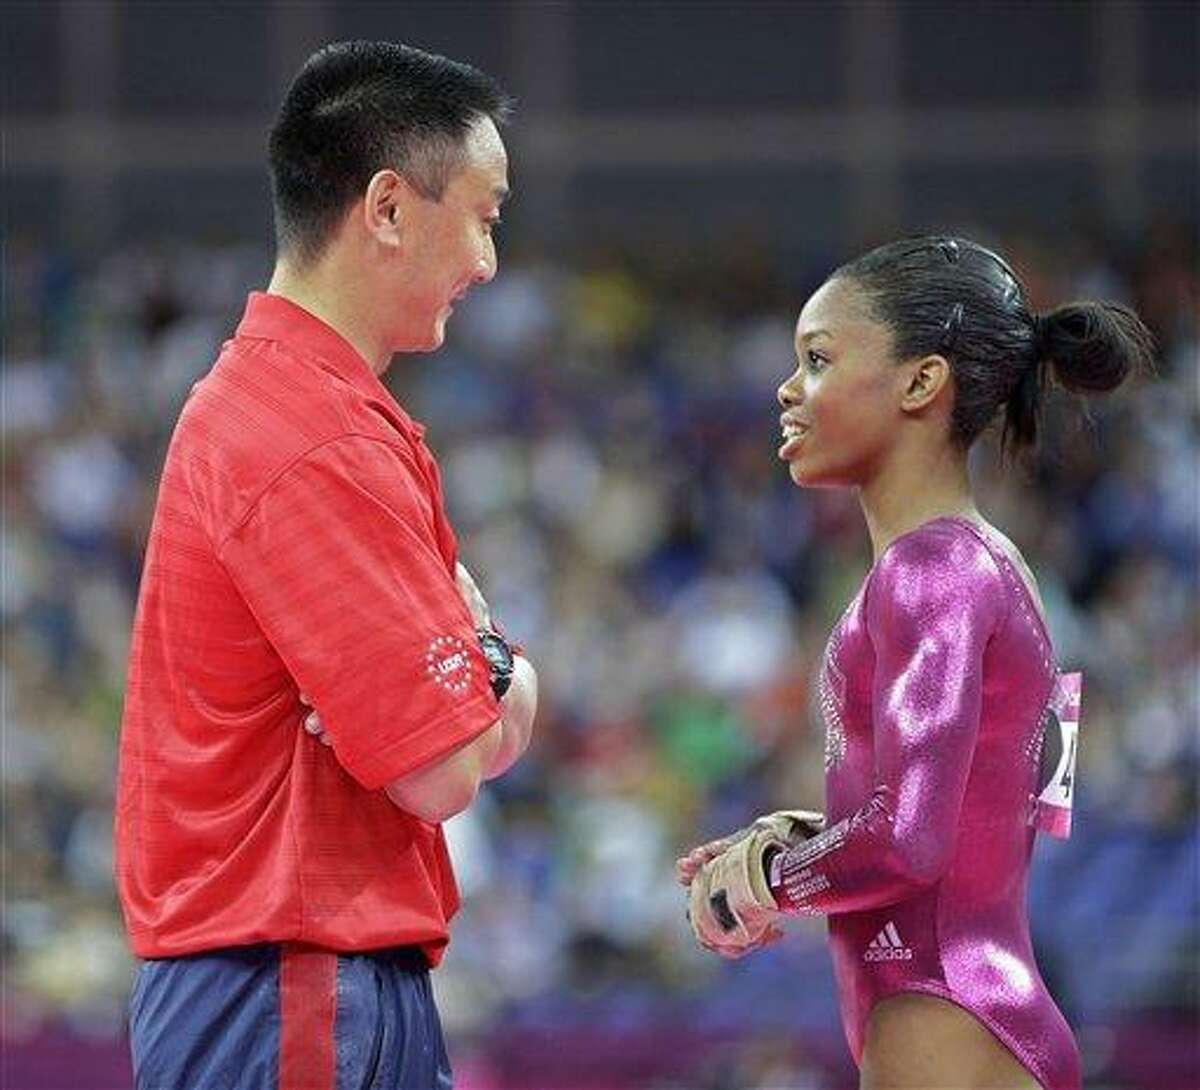 U.S. gymnast Gabrielle Douglas speaks with coach Liang Chow during the artistic gymnastics women's individual all-around competition at the 2012 Summer Olympics, Thursday, Aug. 2, 2012, in London. (AP Photo/Julie Jacobson)